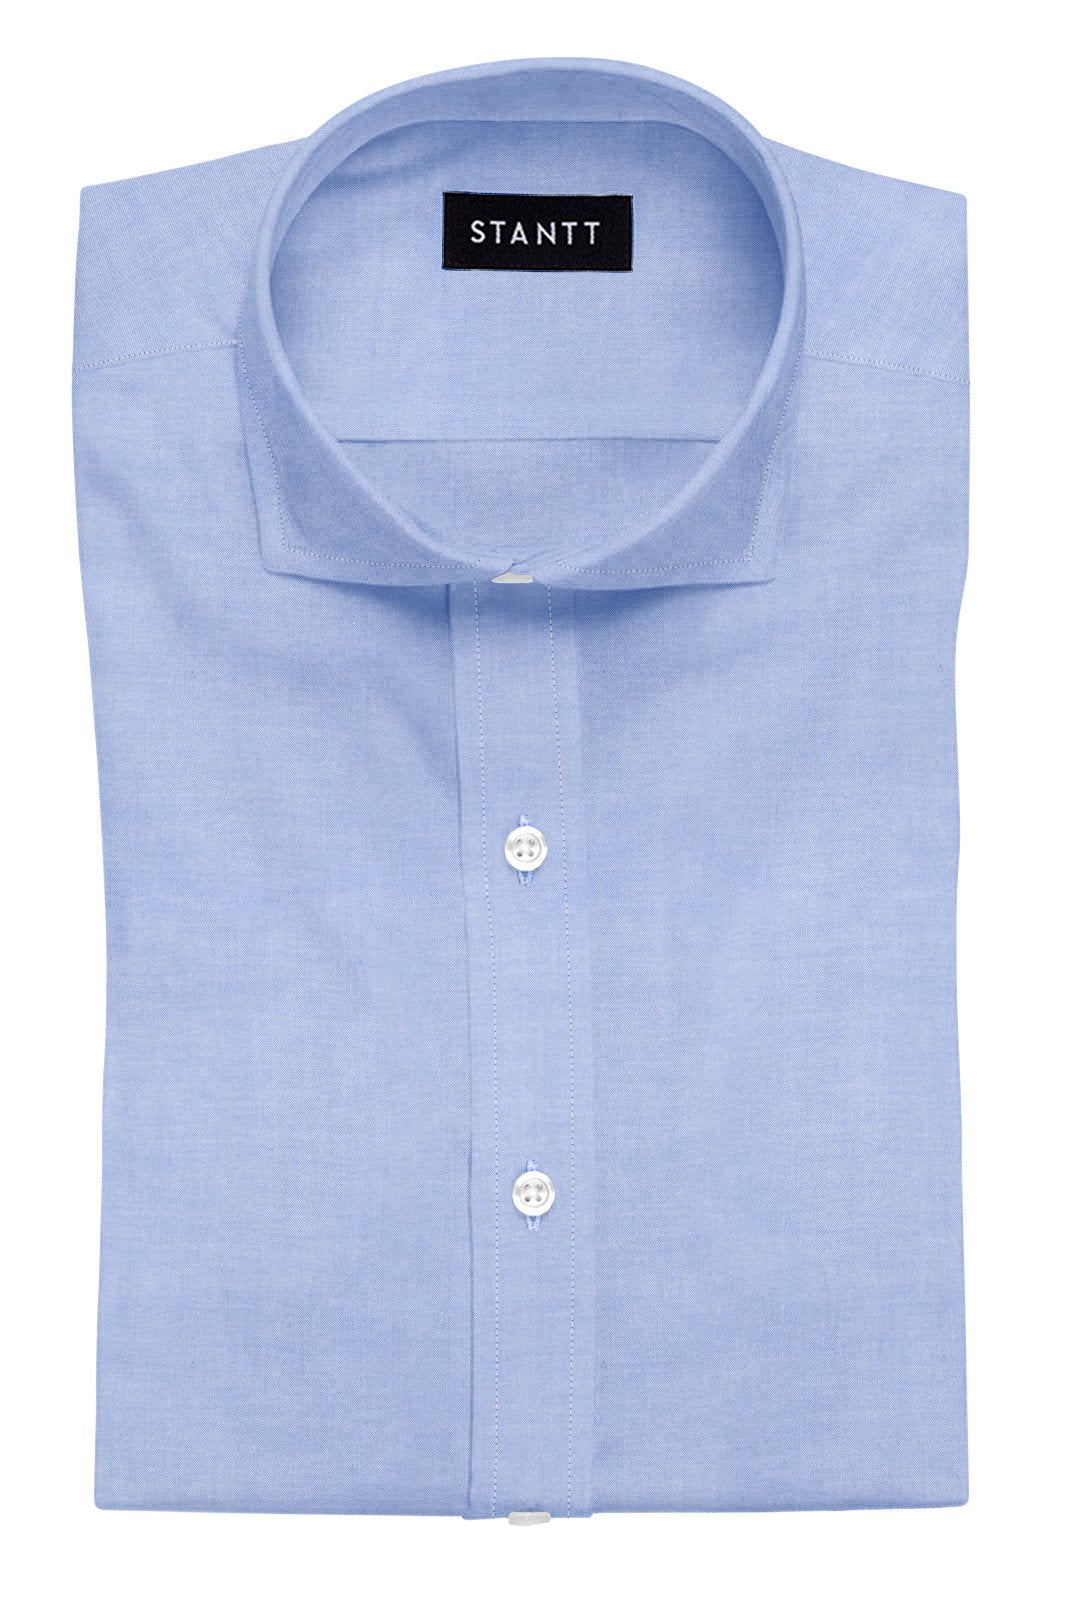 Blue Pinpoint Oxford: Cutaway Collar, Barrel Cuff